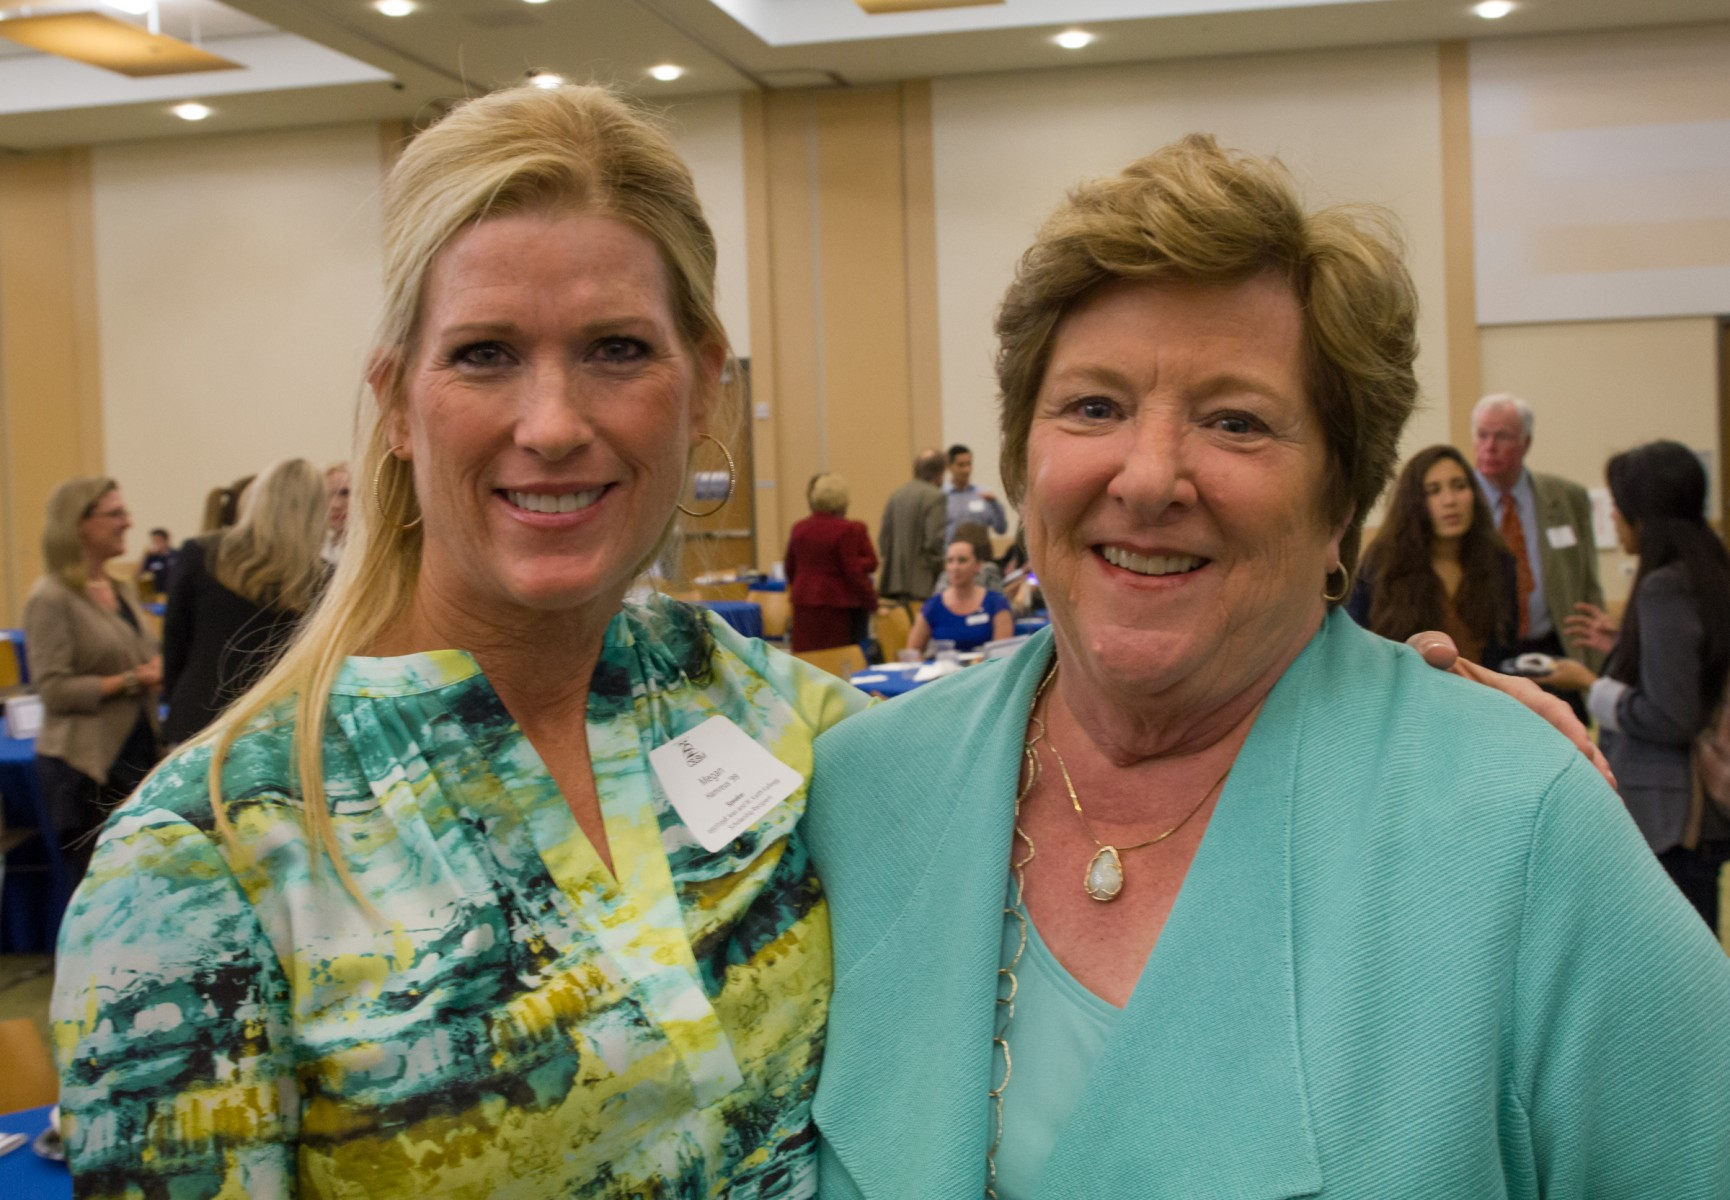 Dr. Megan Hamerus and Carolyn McGurn